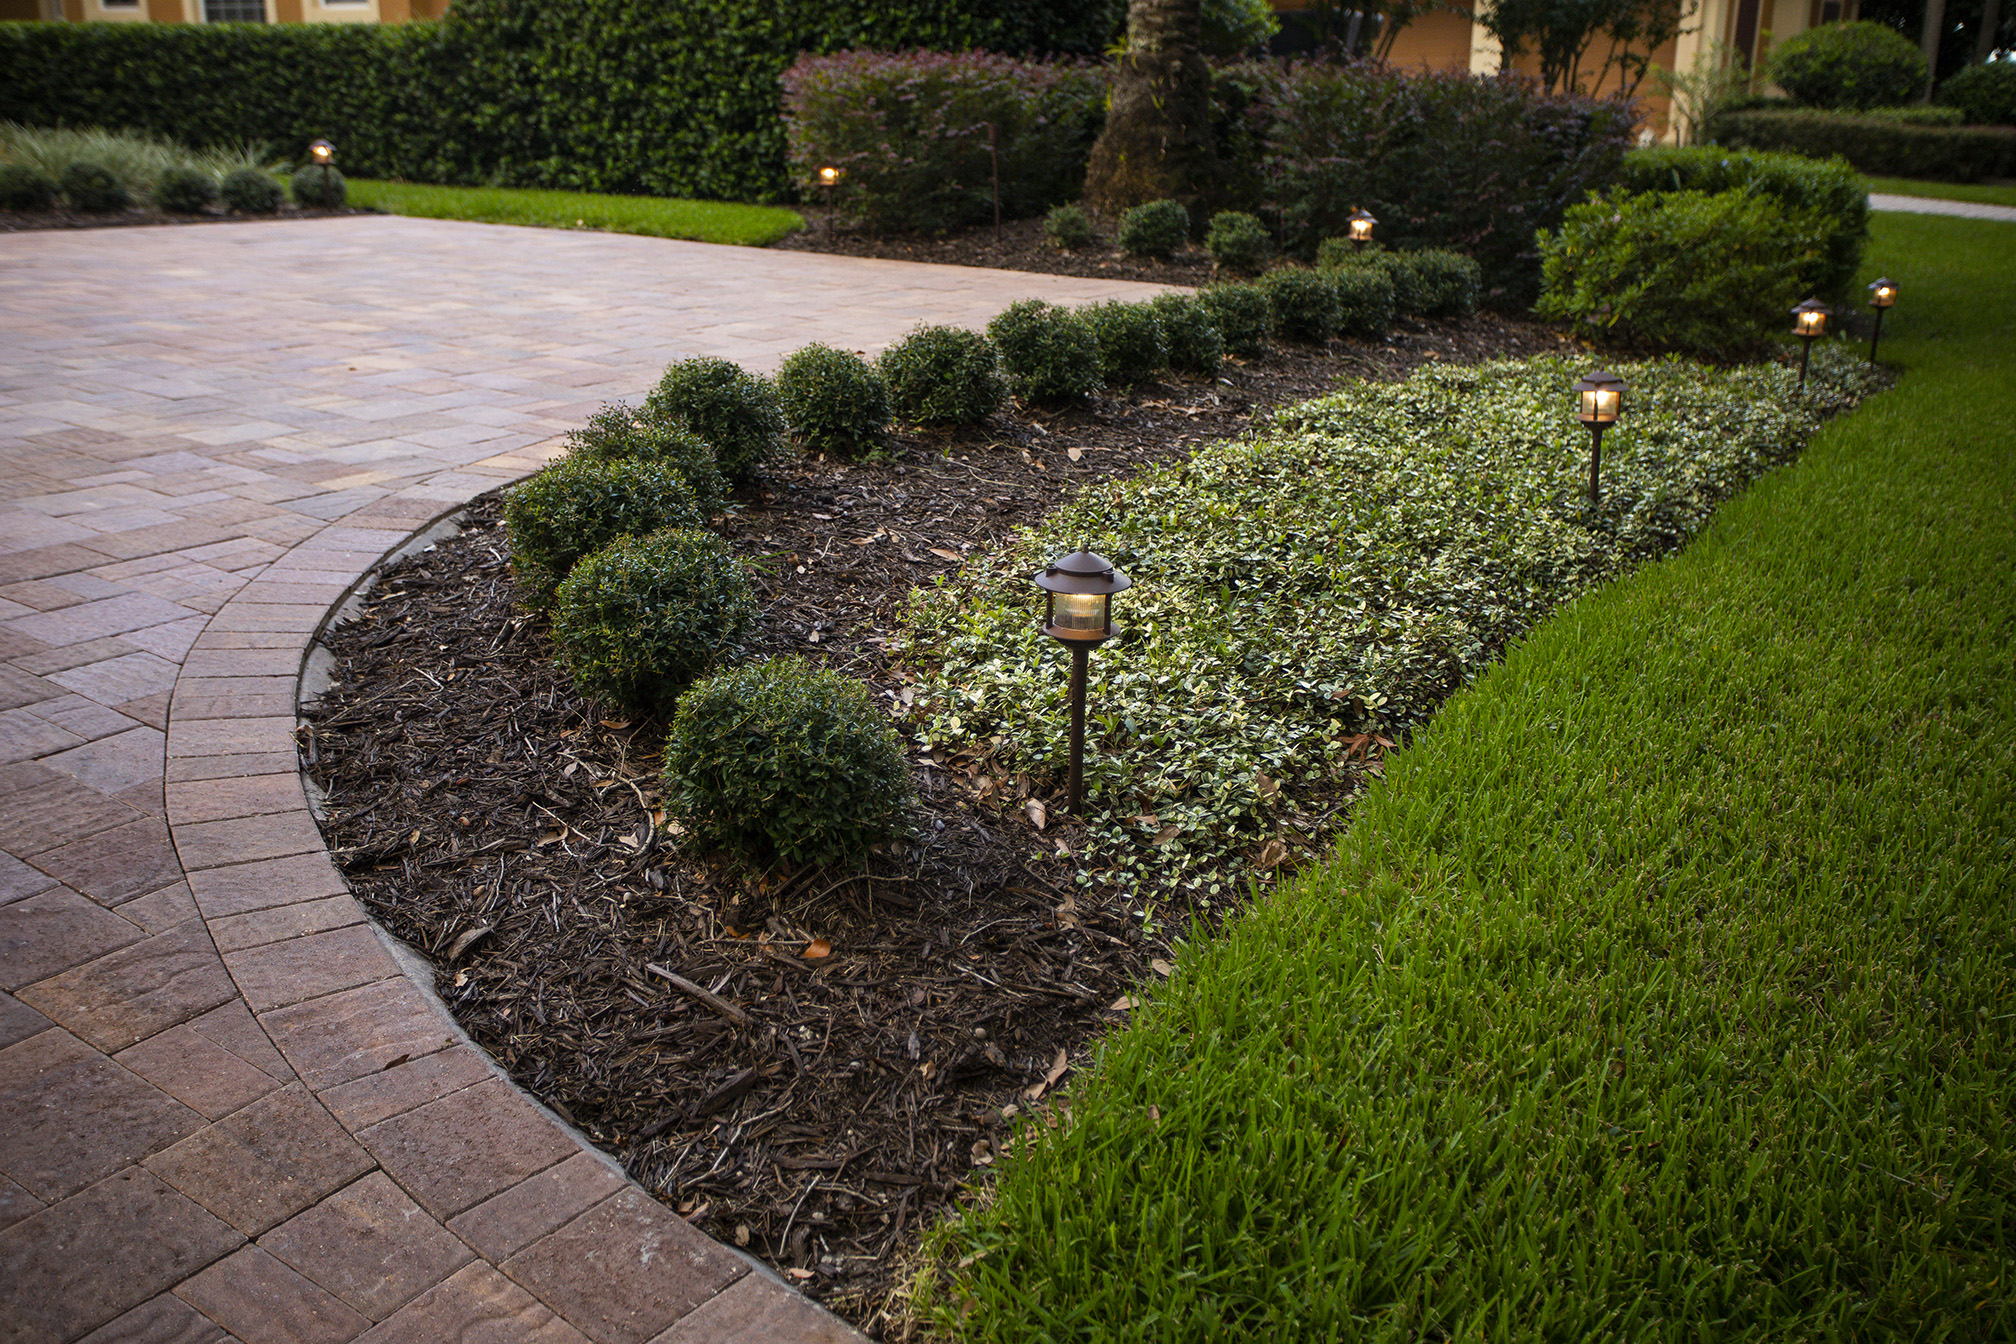 Landscape lighting and hardscaping